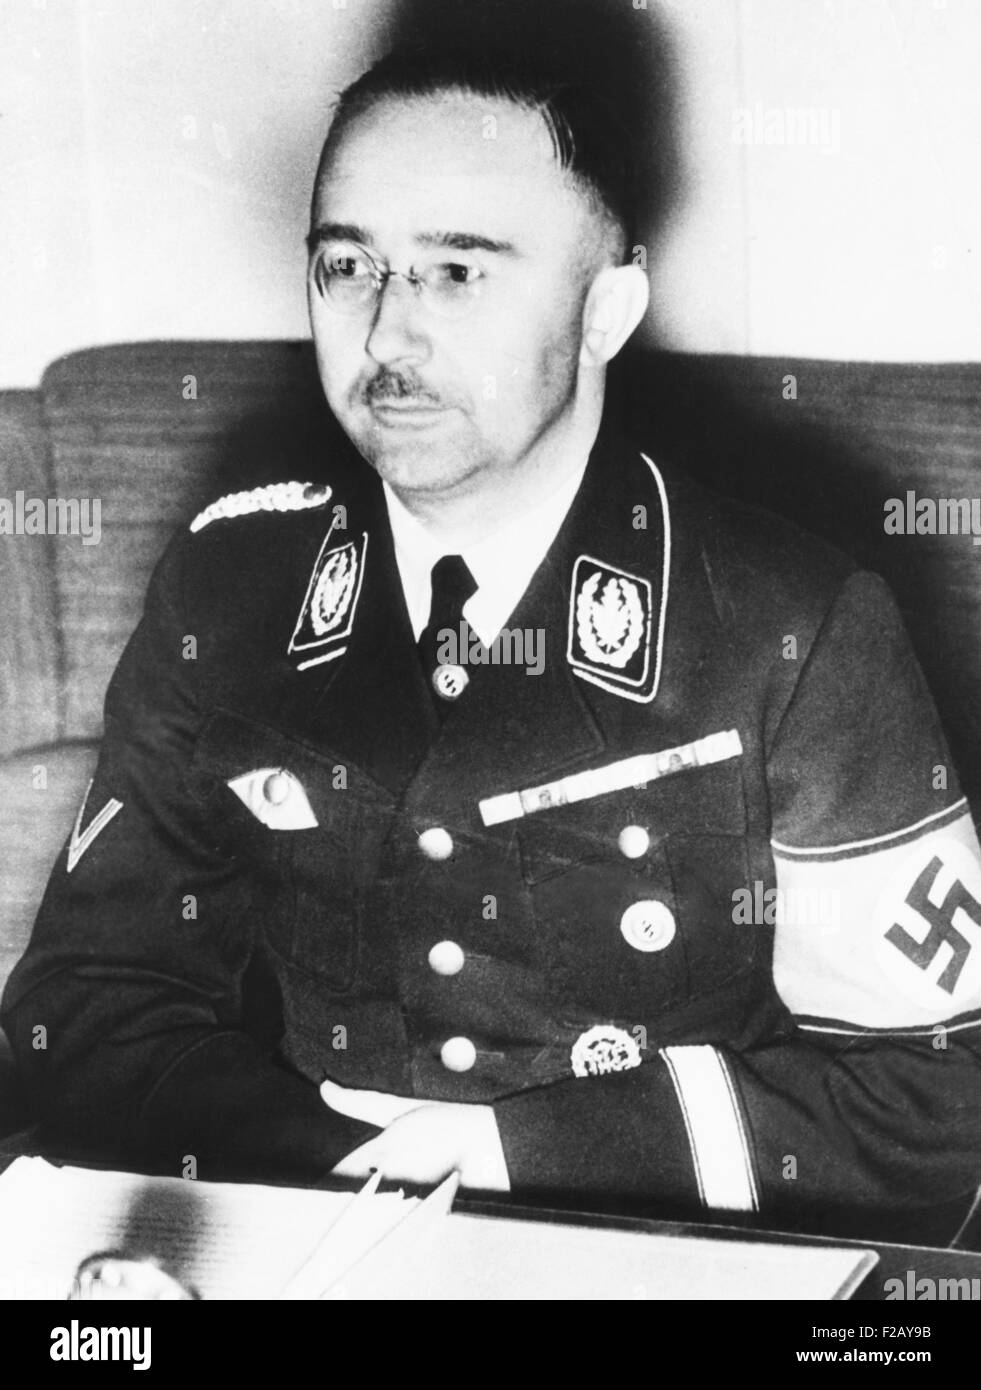 Heinrich Himmler, leader of the Nazi Germany's elite Schutzstaffel or SS. Ca. 1940. From 1939-1945, during World - Stock Image